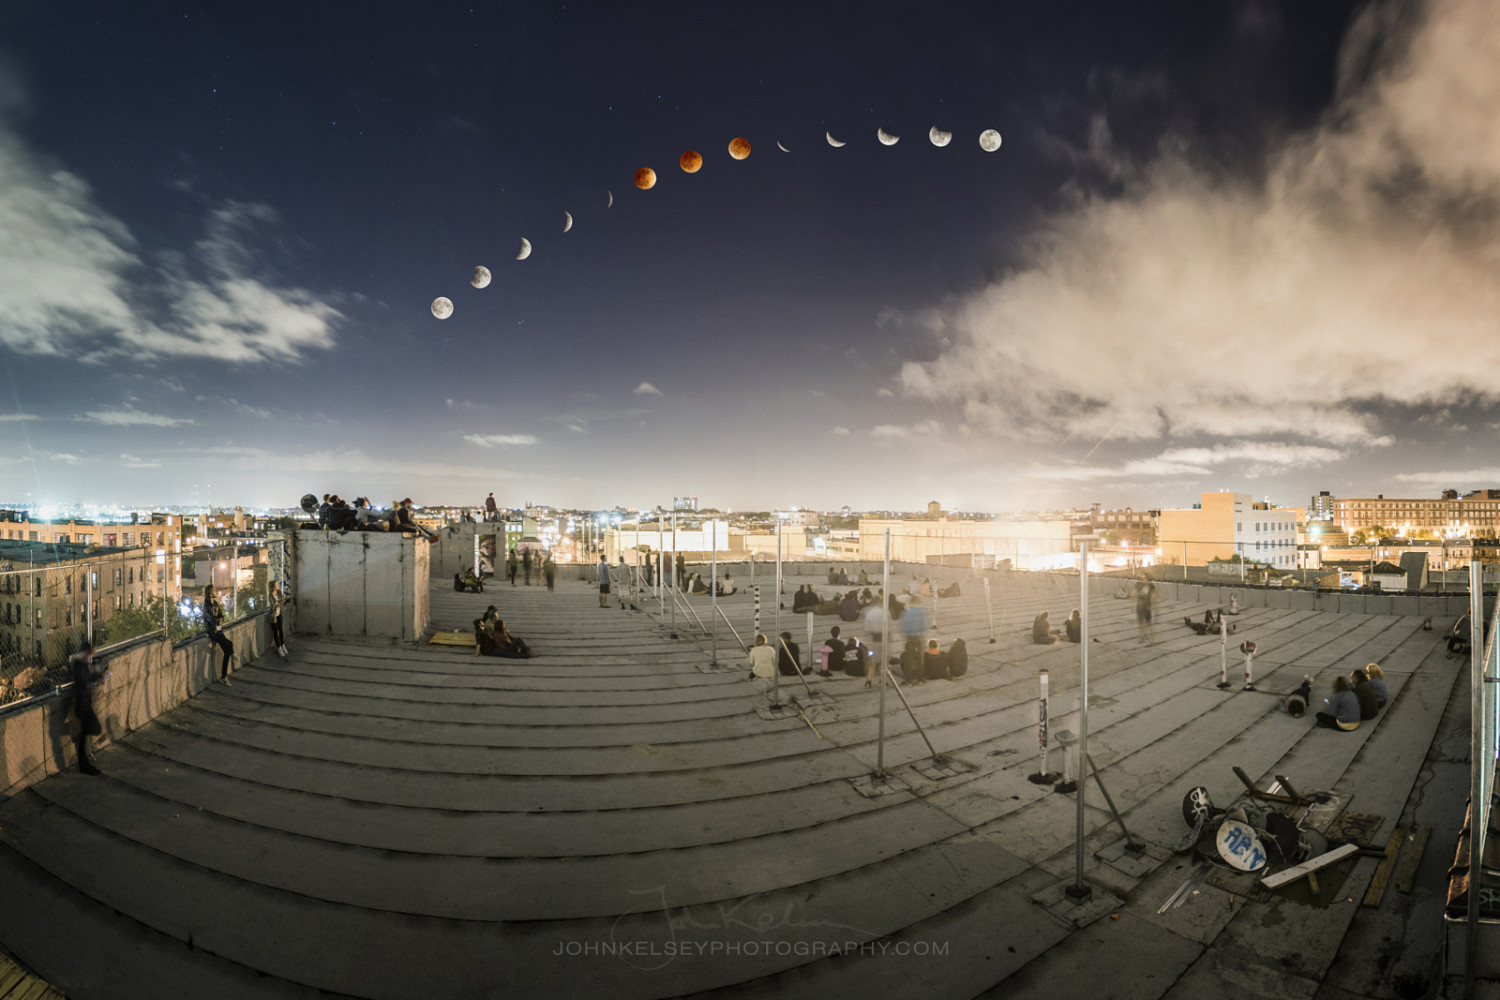 40 Amazing Eclipse Photos from Last Night's 'Super Blood Moon' - 500px Blog